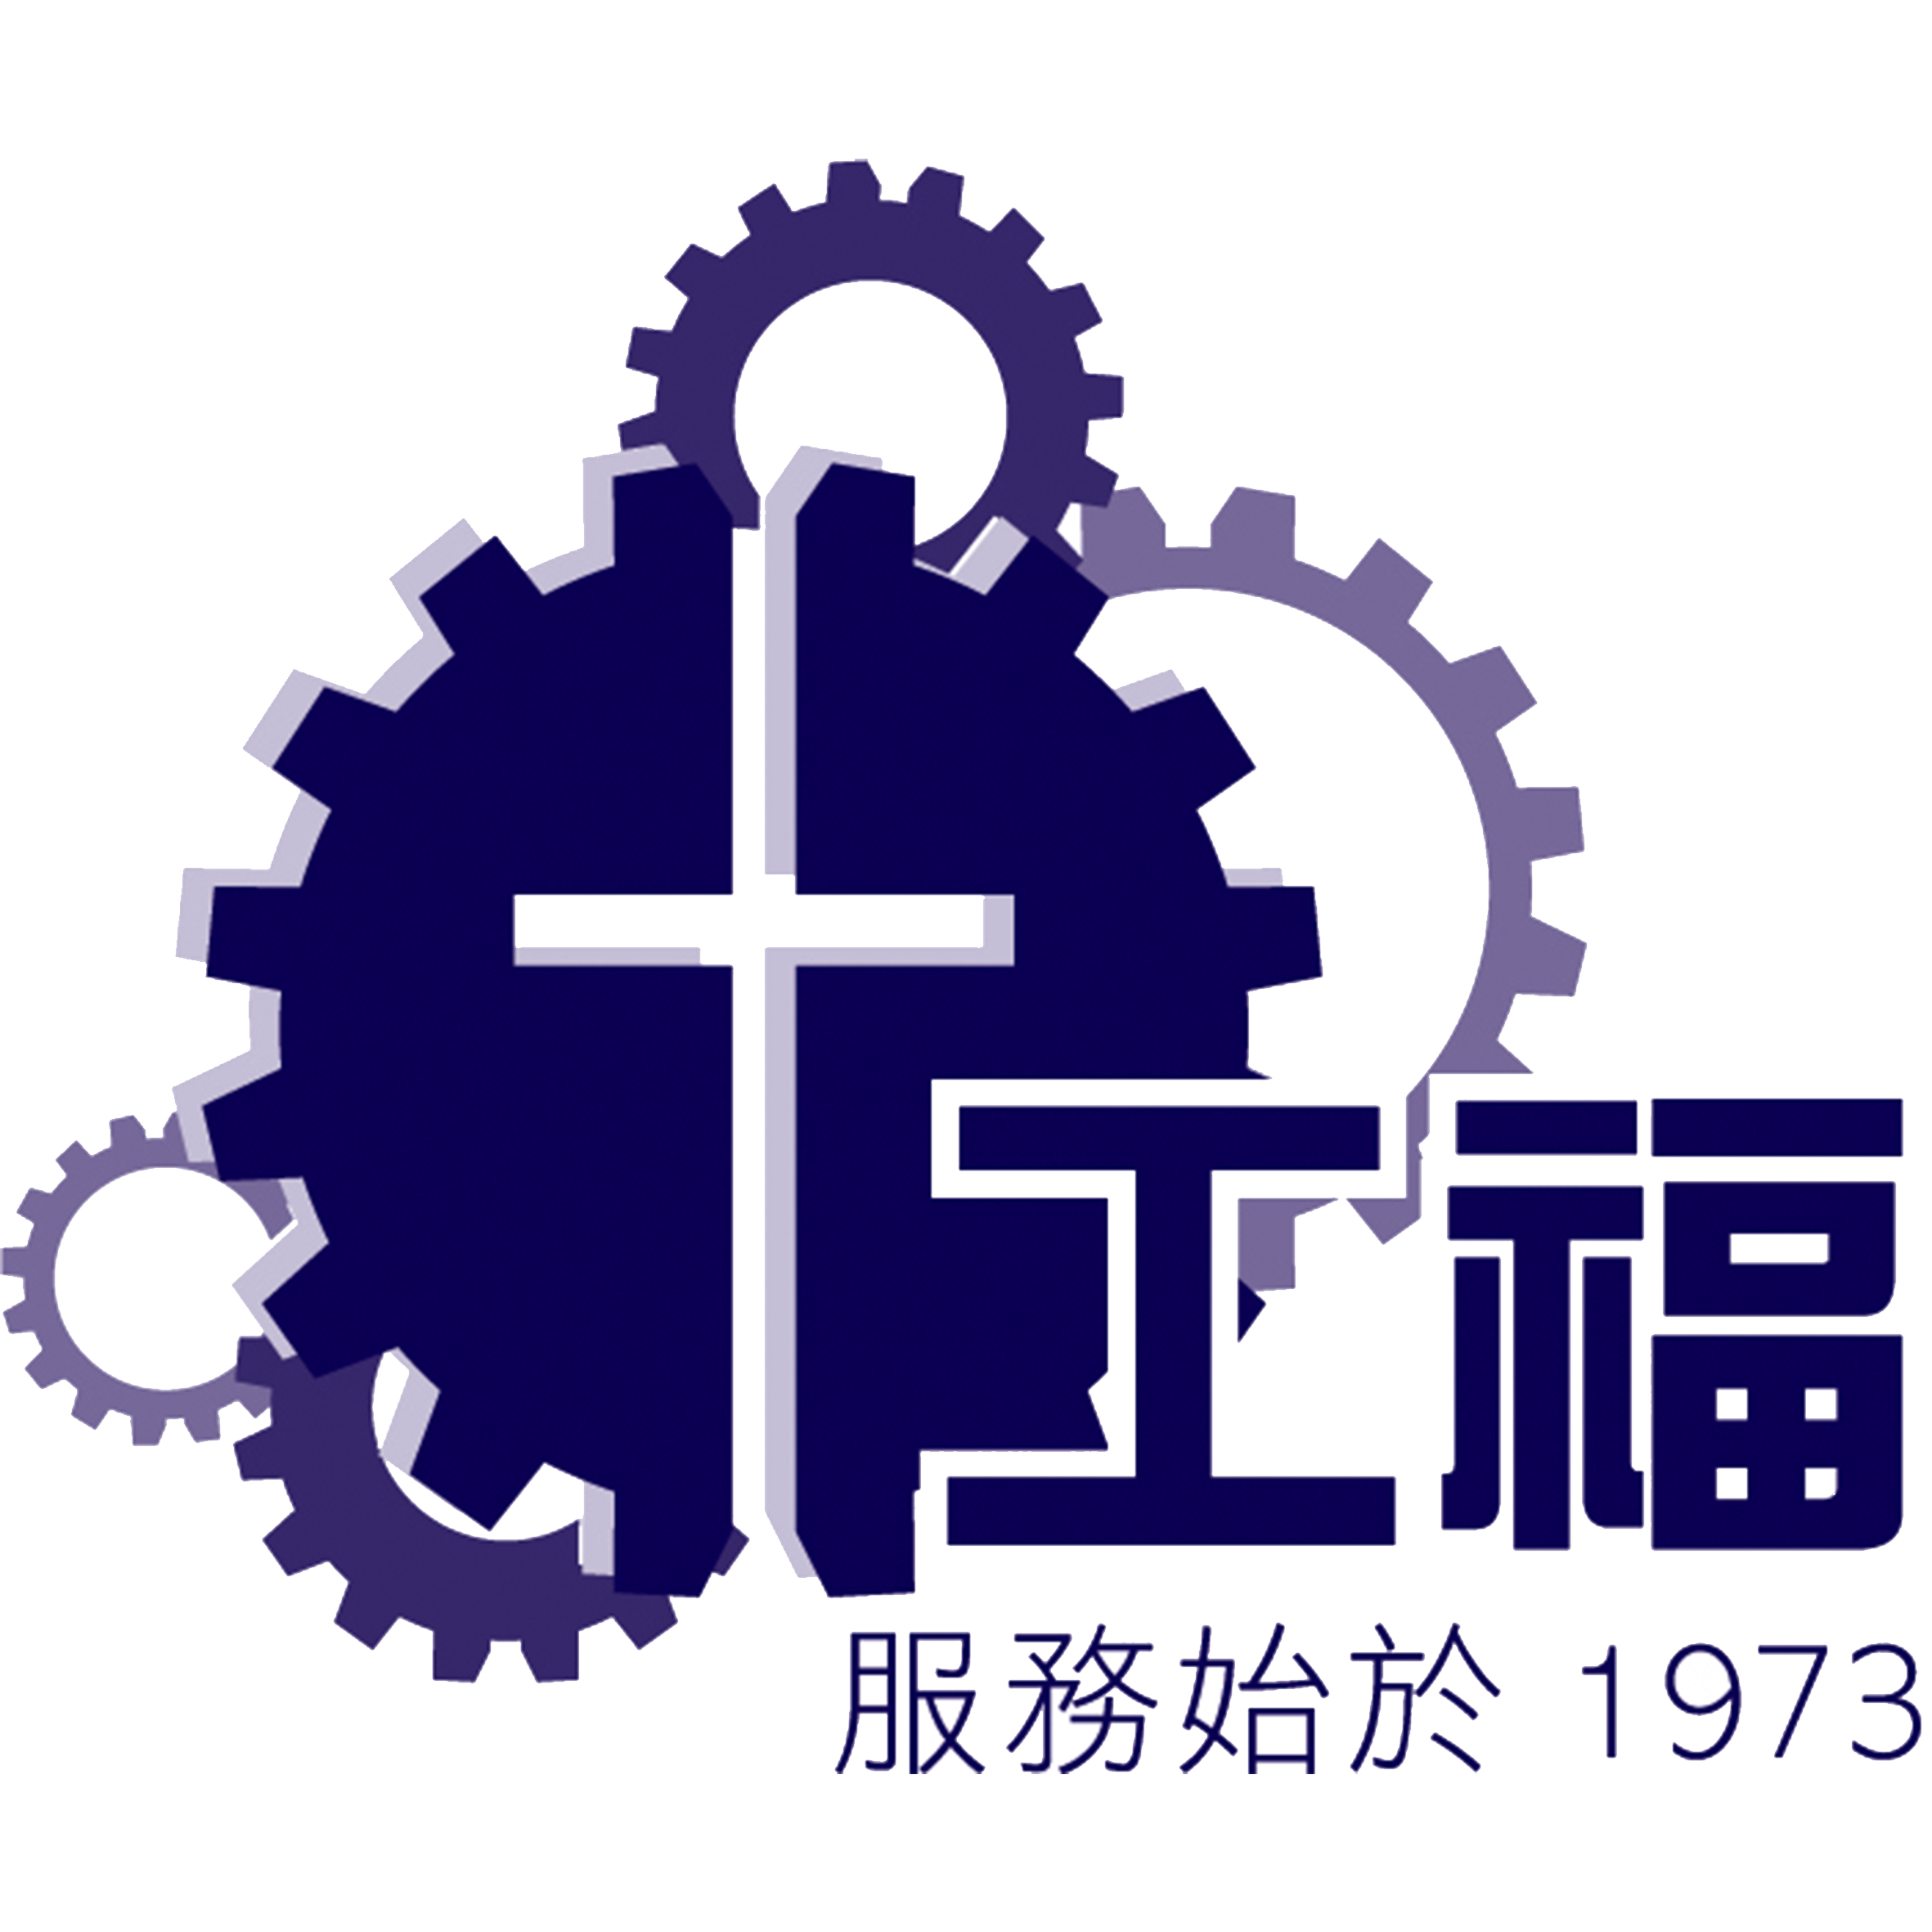 The Industrial Evangelistic Fellowship LTD